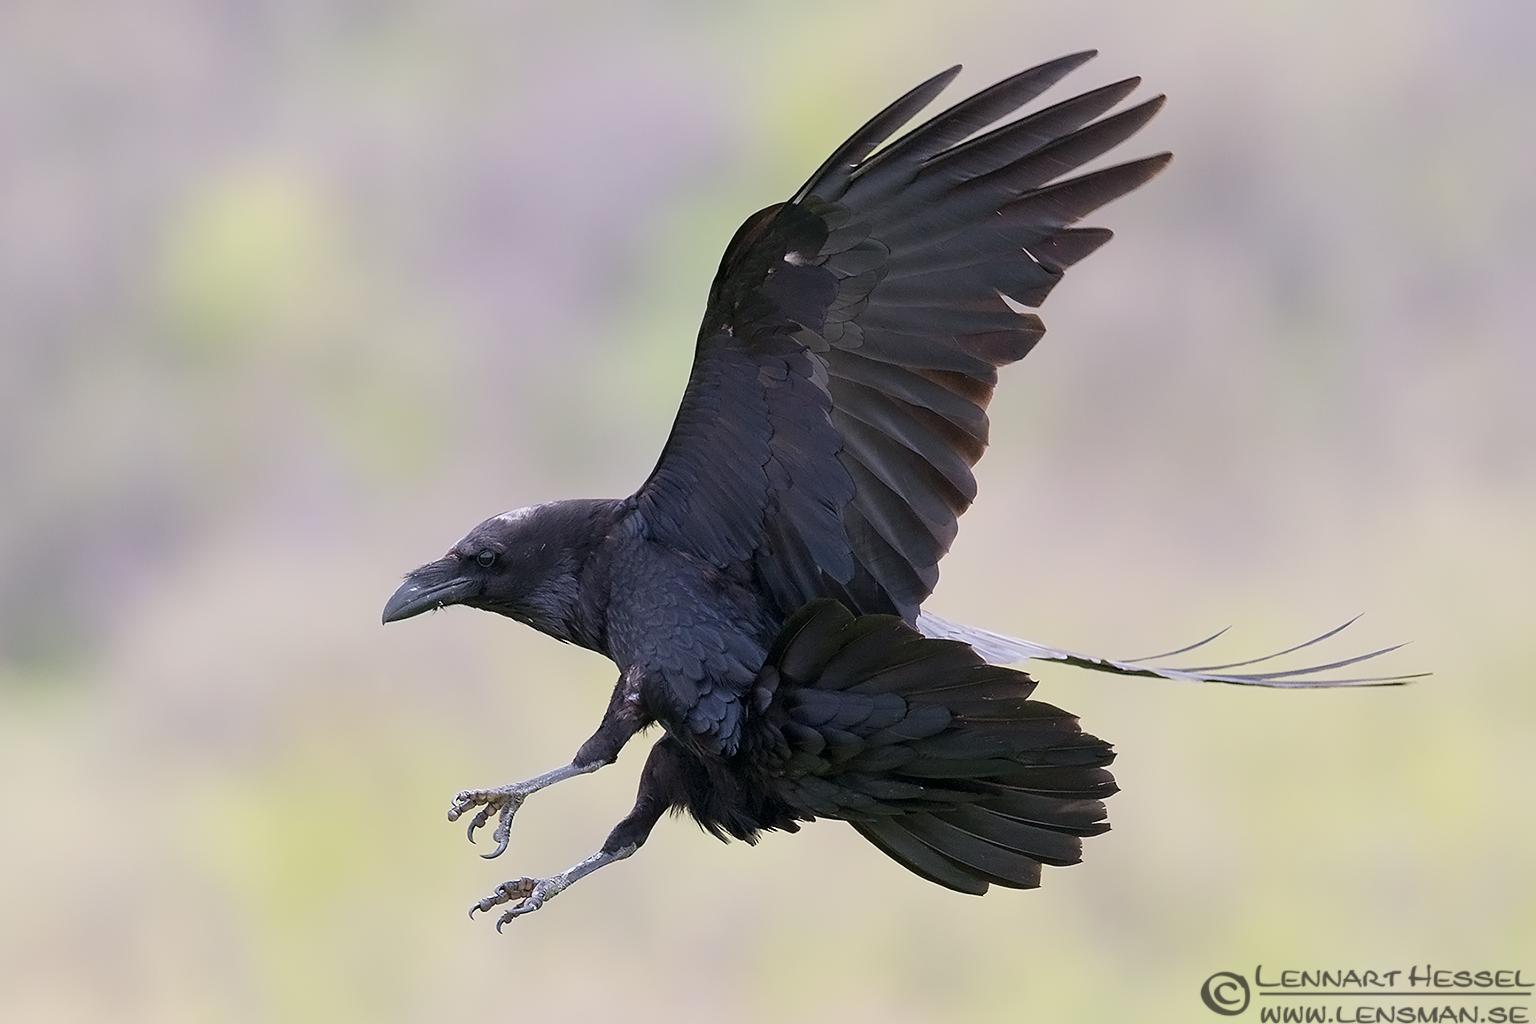 Common Raven from Bulgaria Vulture workshop